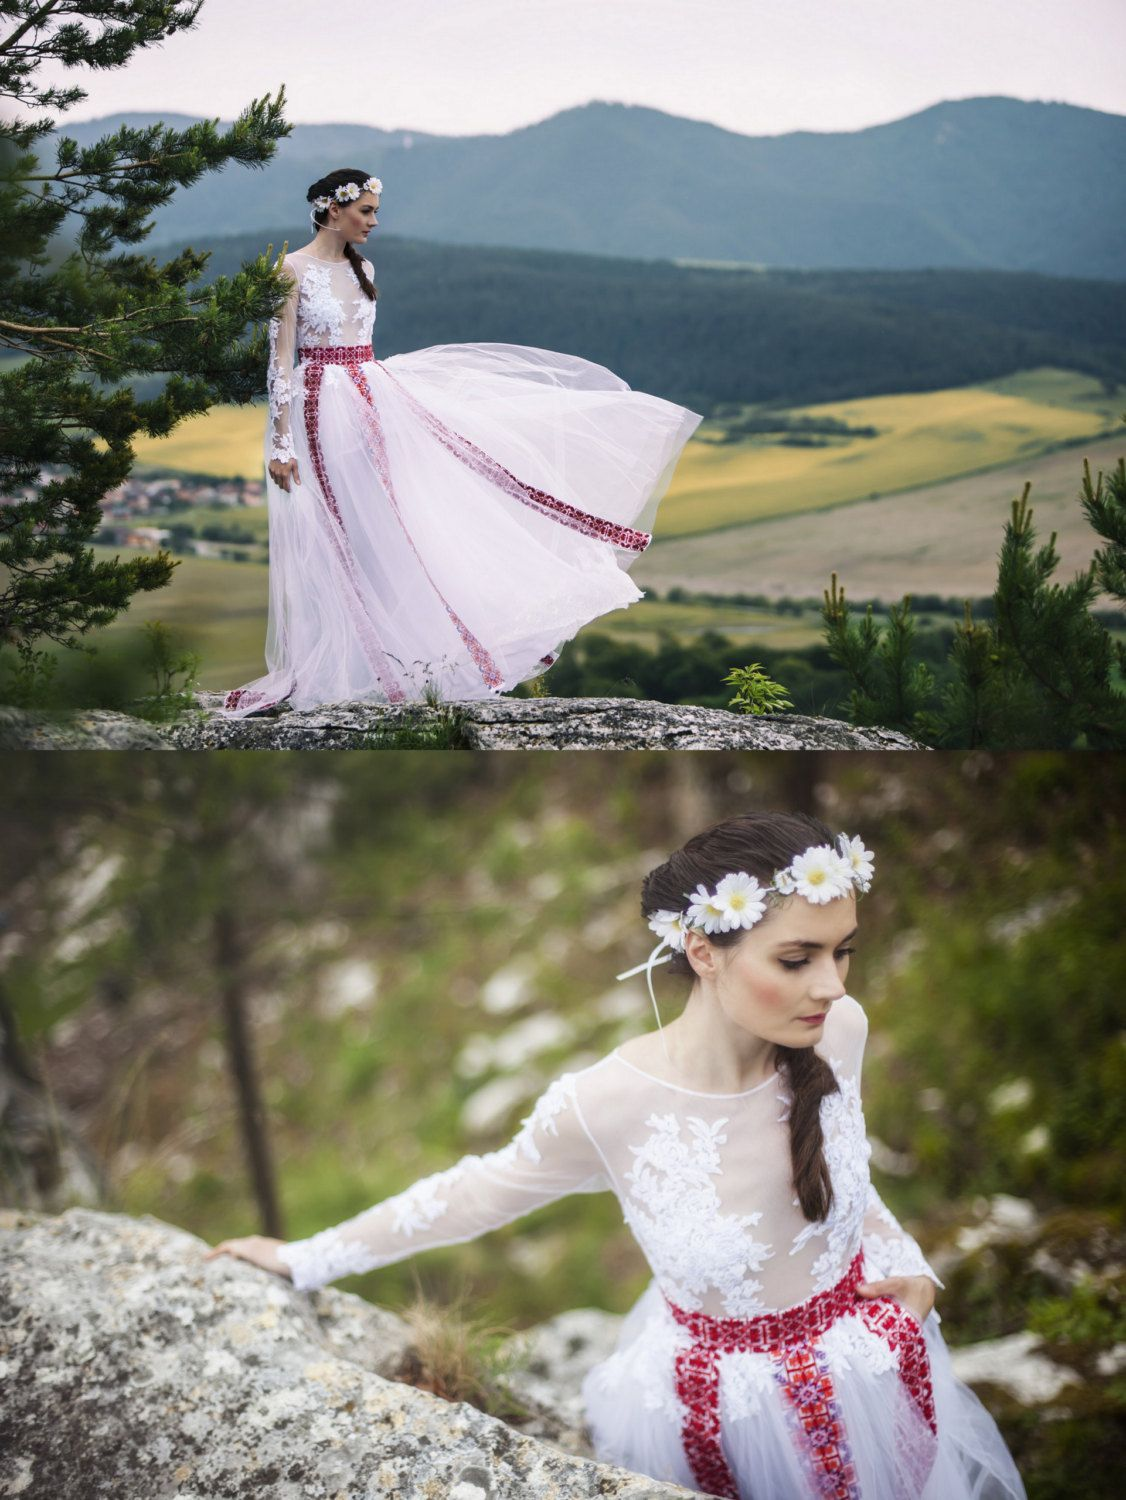 White embroiderde dress with lace by AtelierDeCoutureJK on